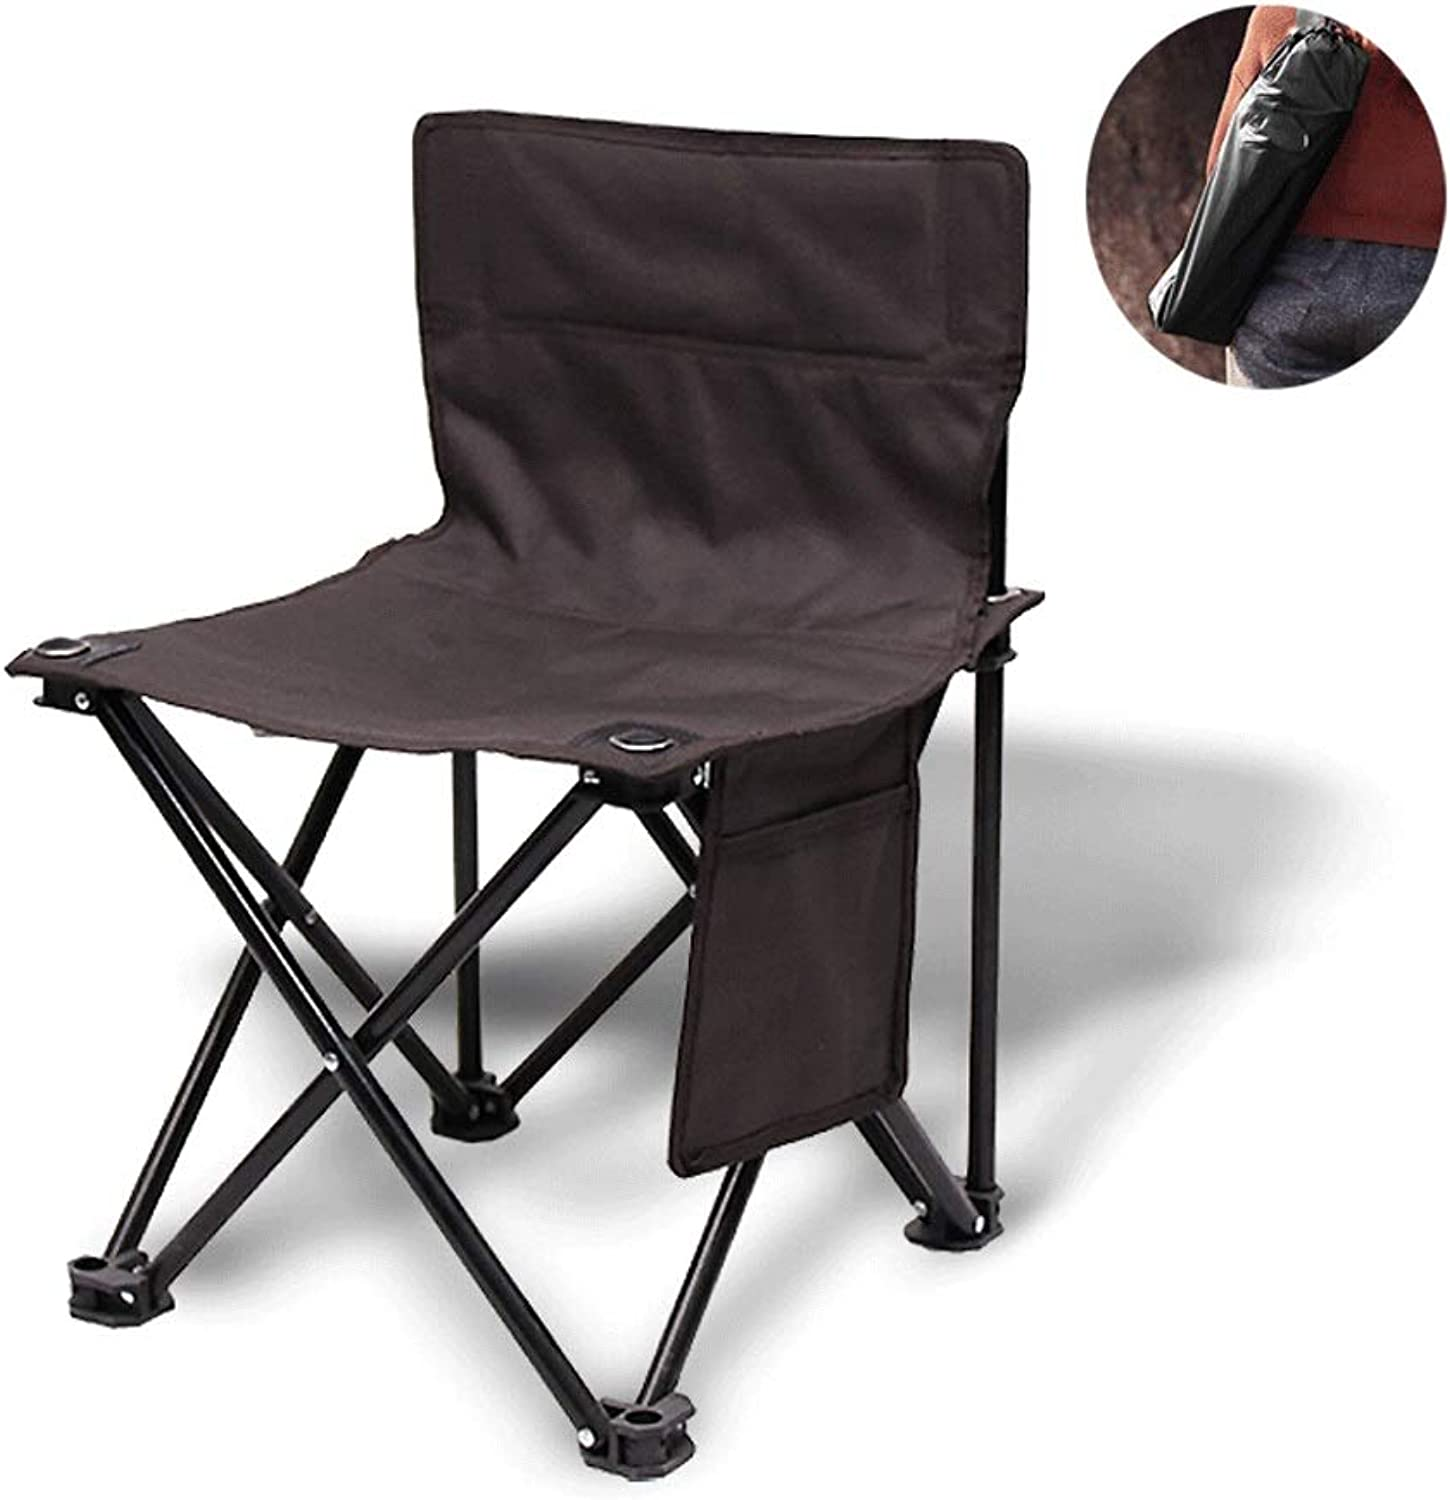 Camping Chair Folding for Outdoor Camping BBQ Beach Travel Picnic Fishing Festival